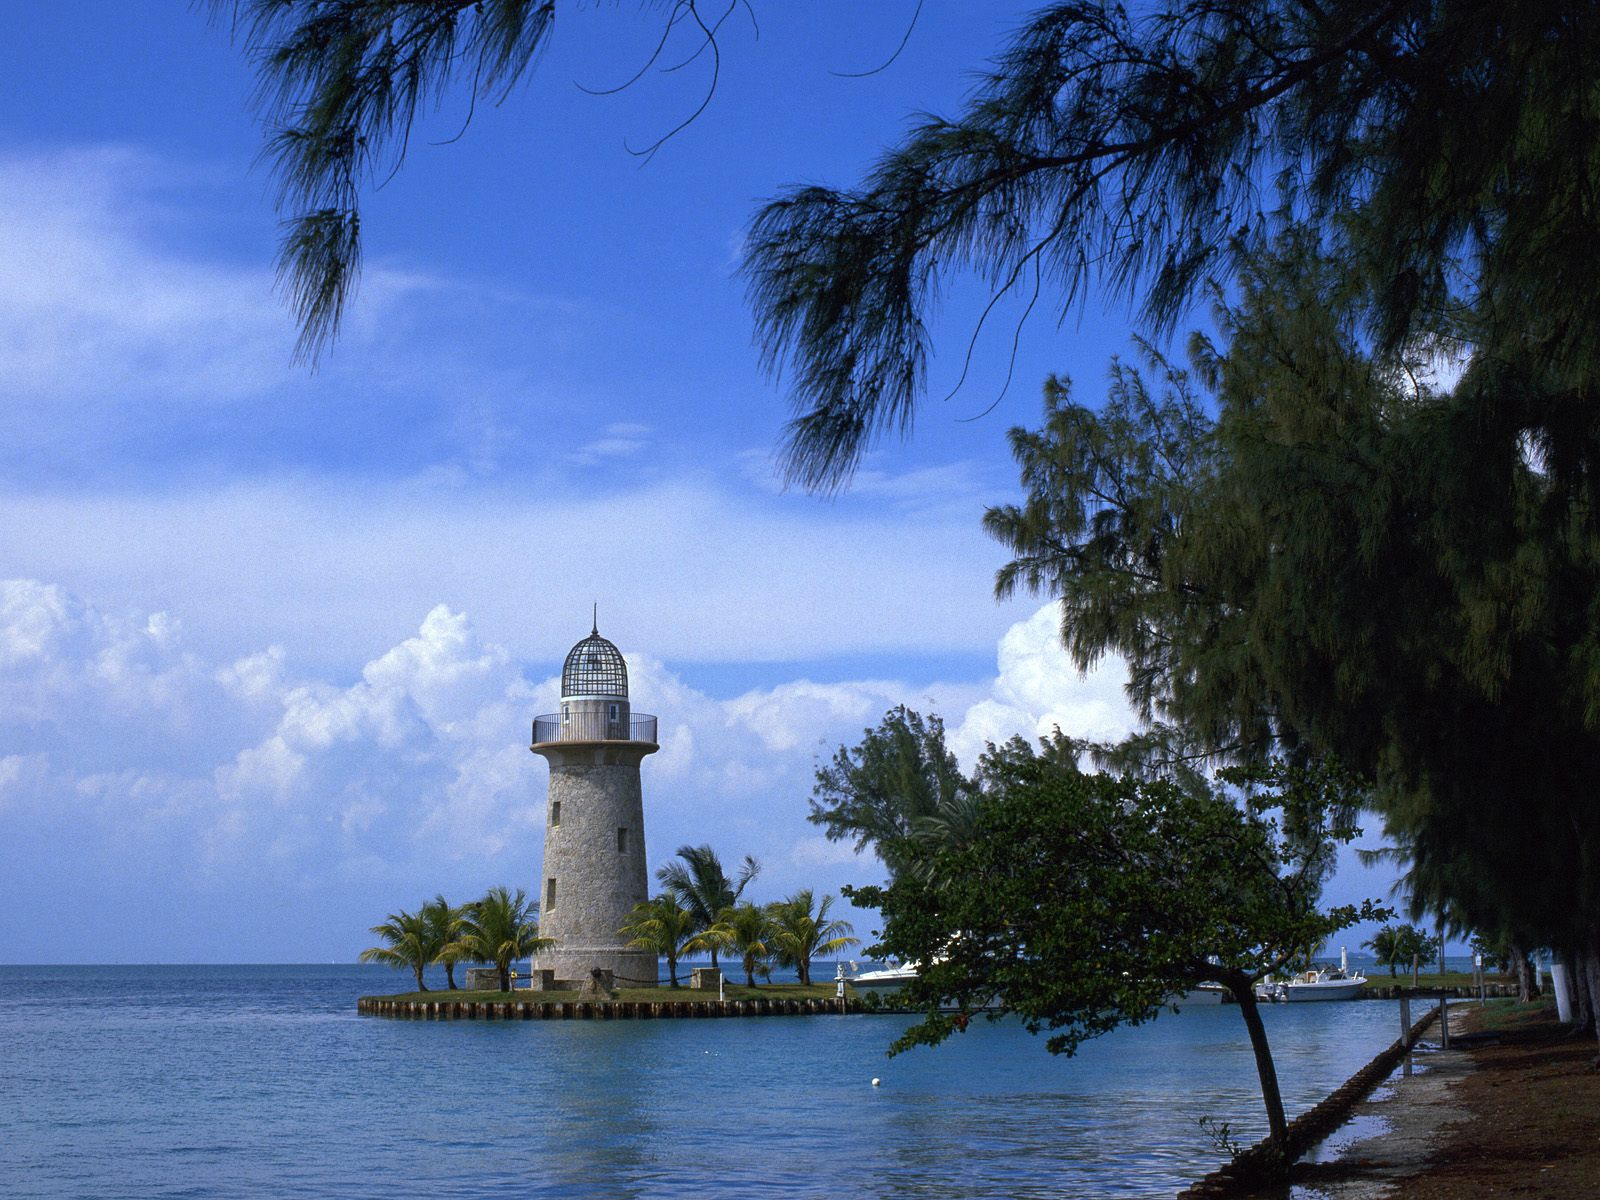 Boca Chita Lighthouse Biscayne National Park Florida